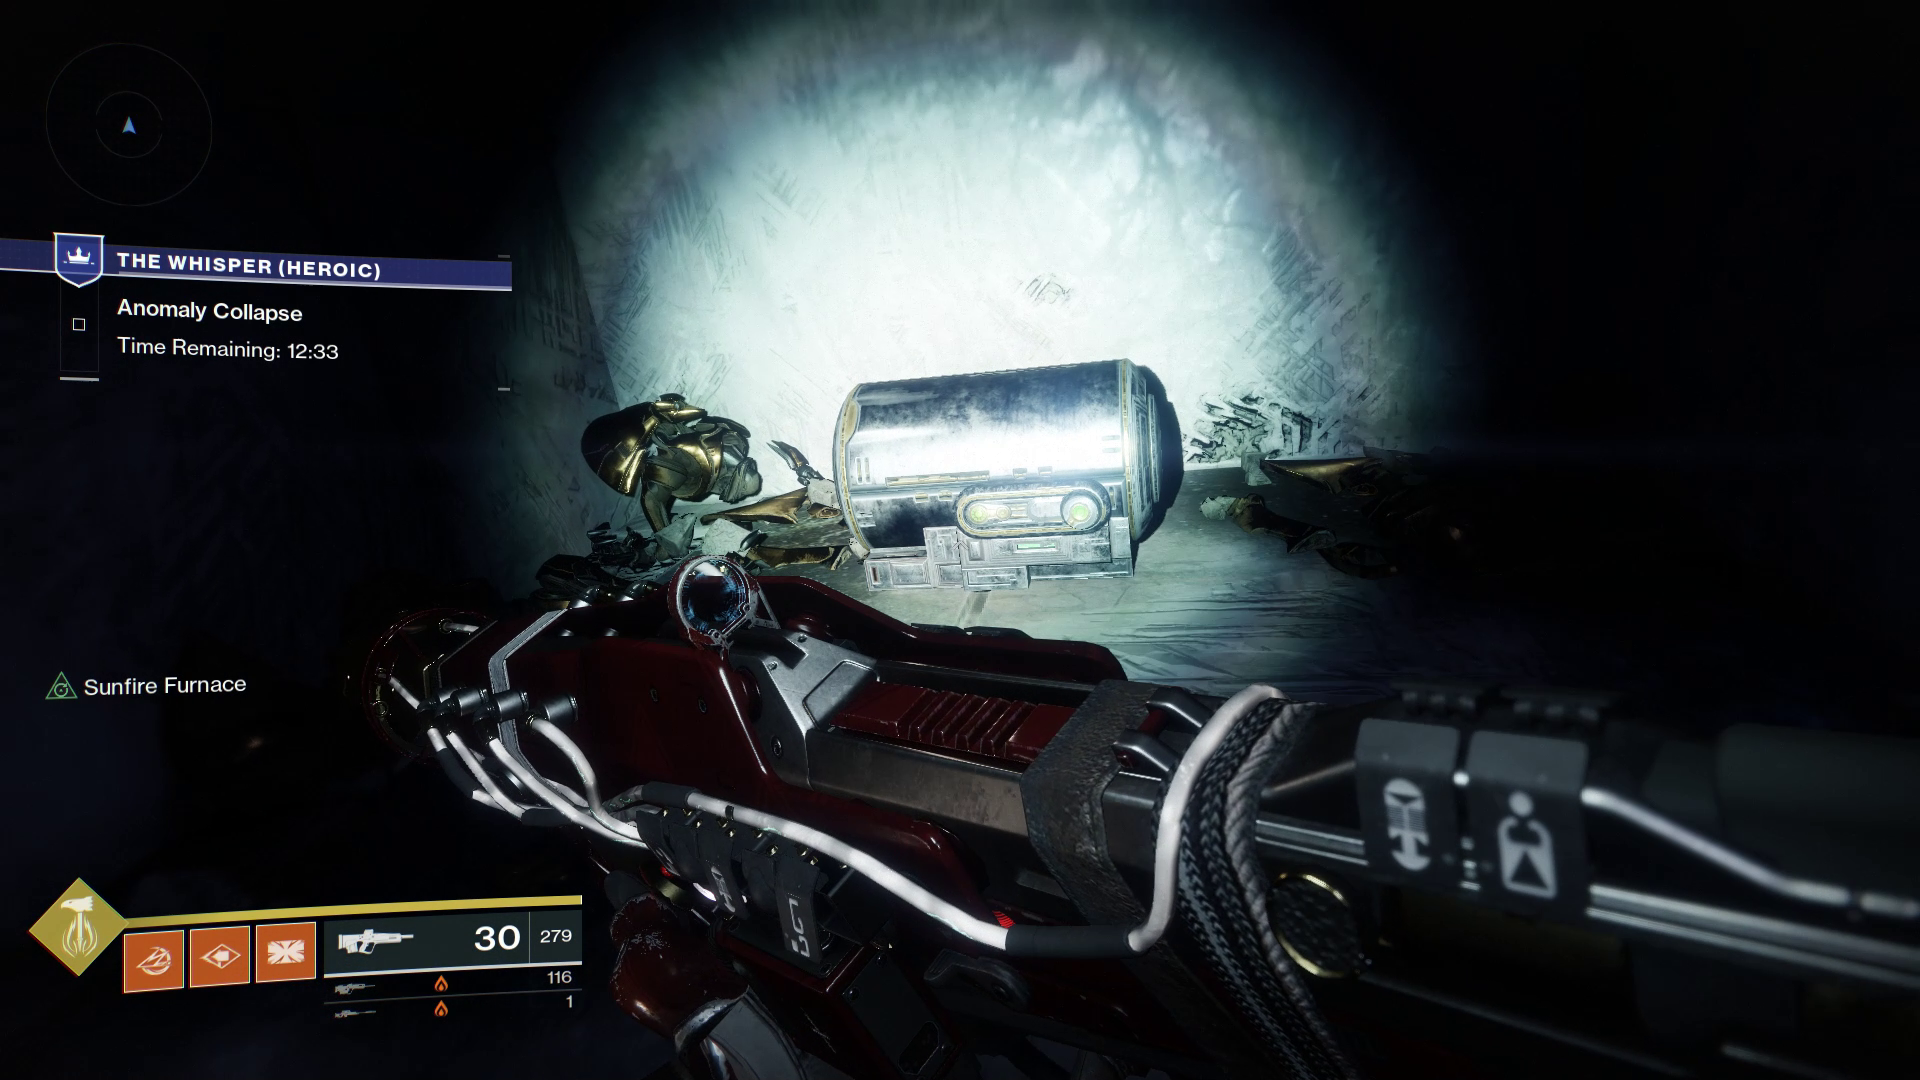 Destiny 2 The Whisper mission guide: How to find secret chests